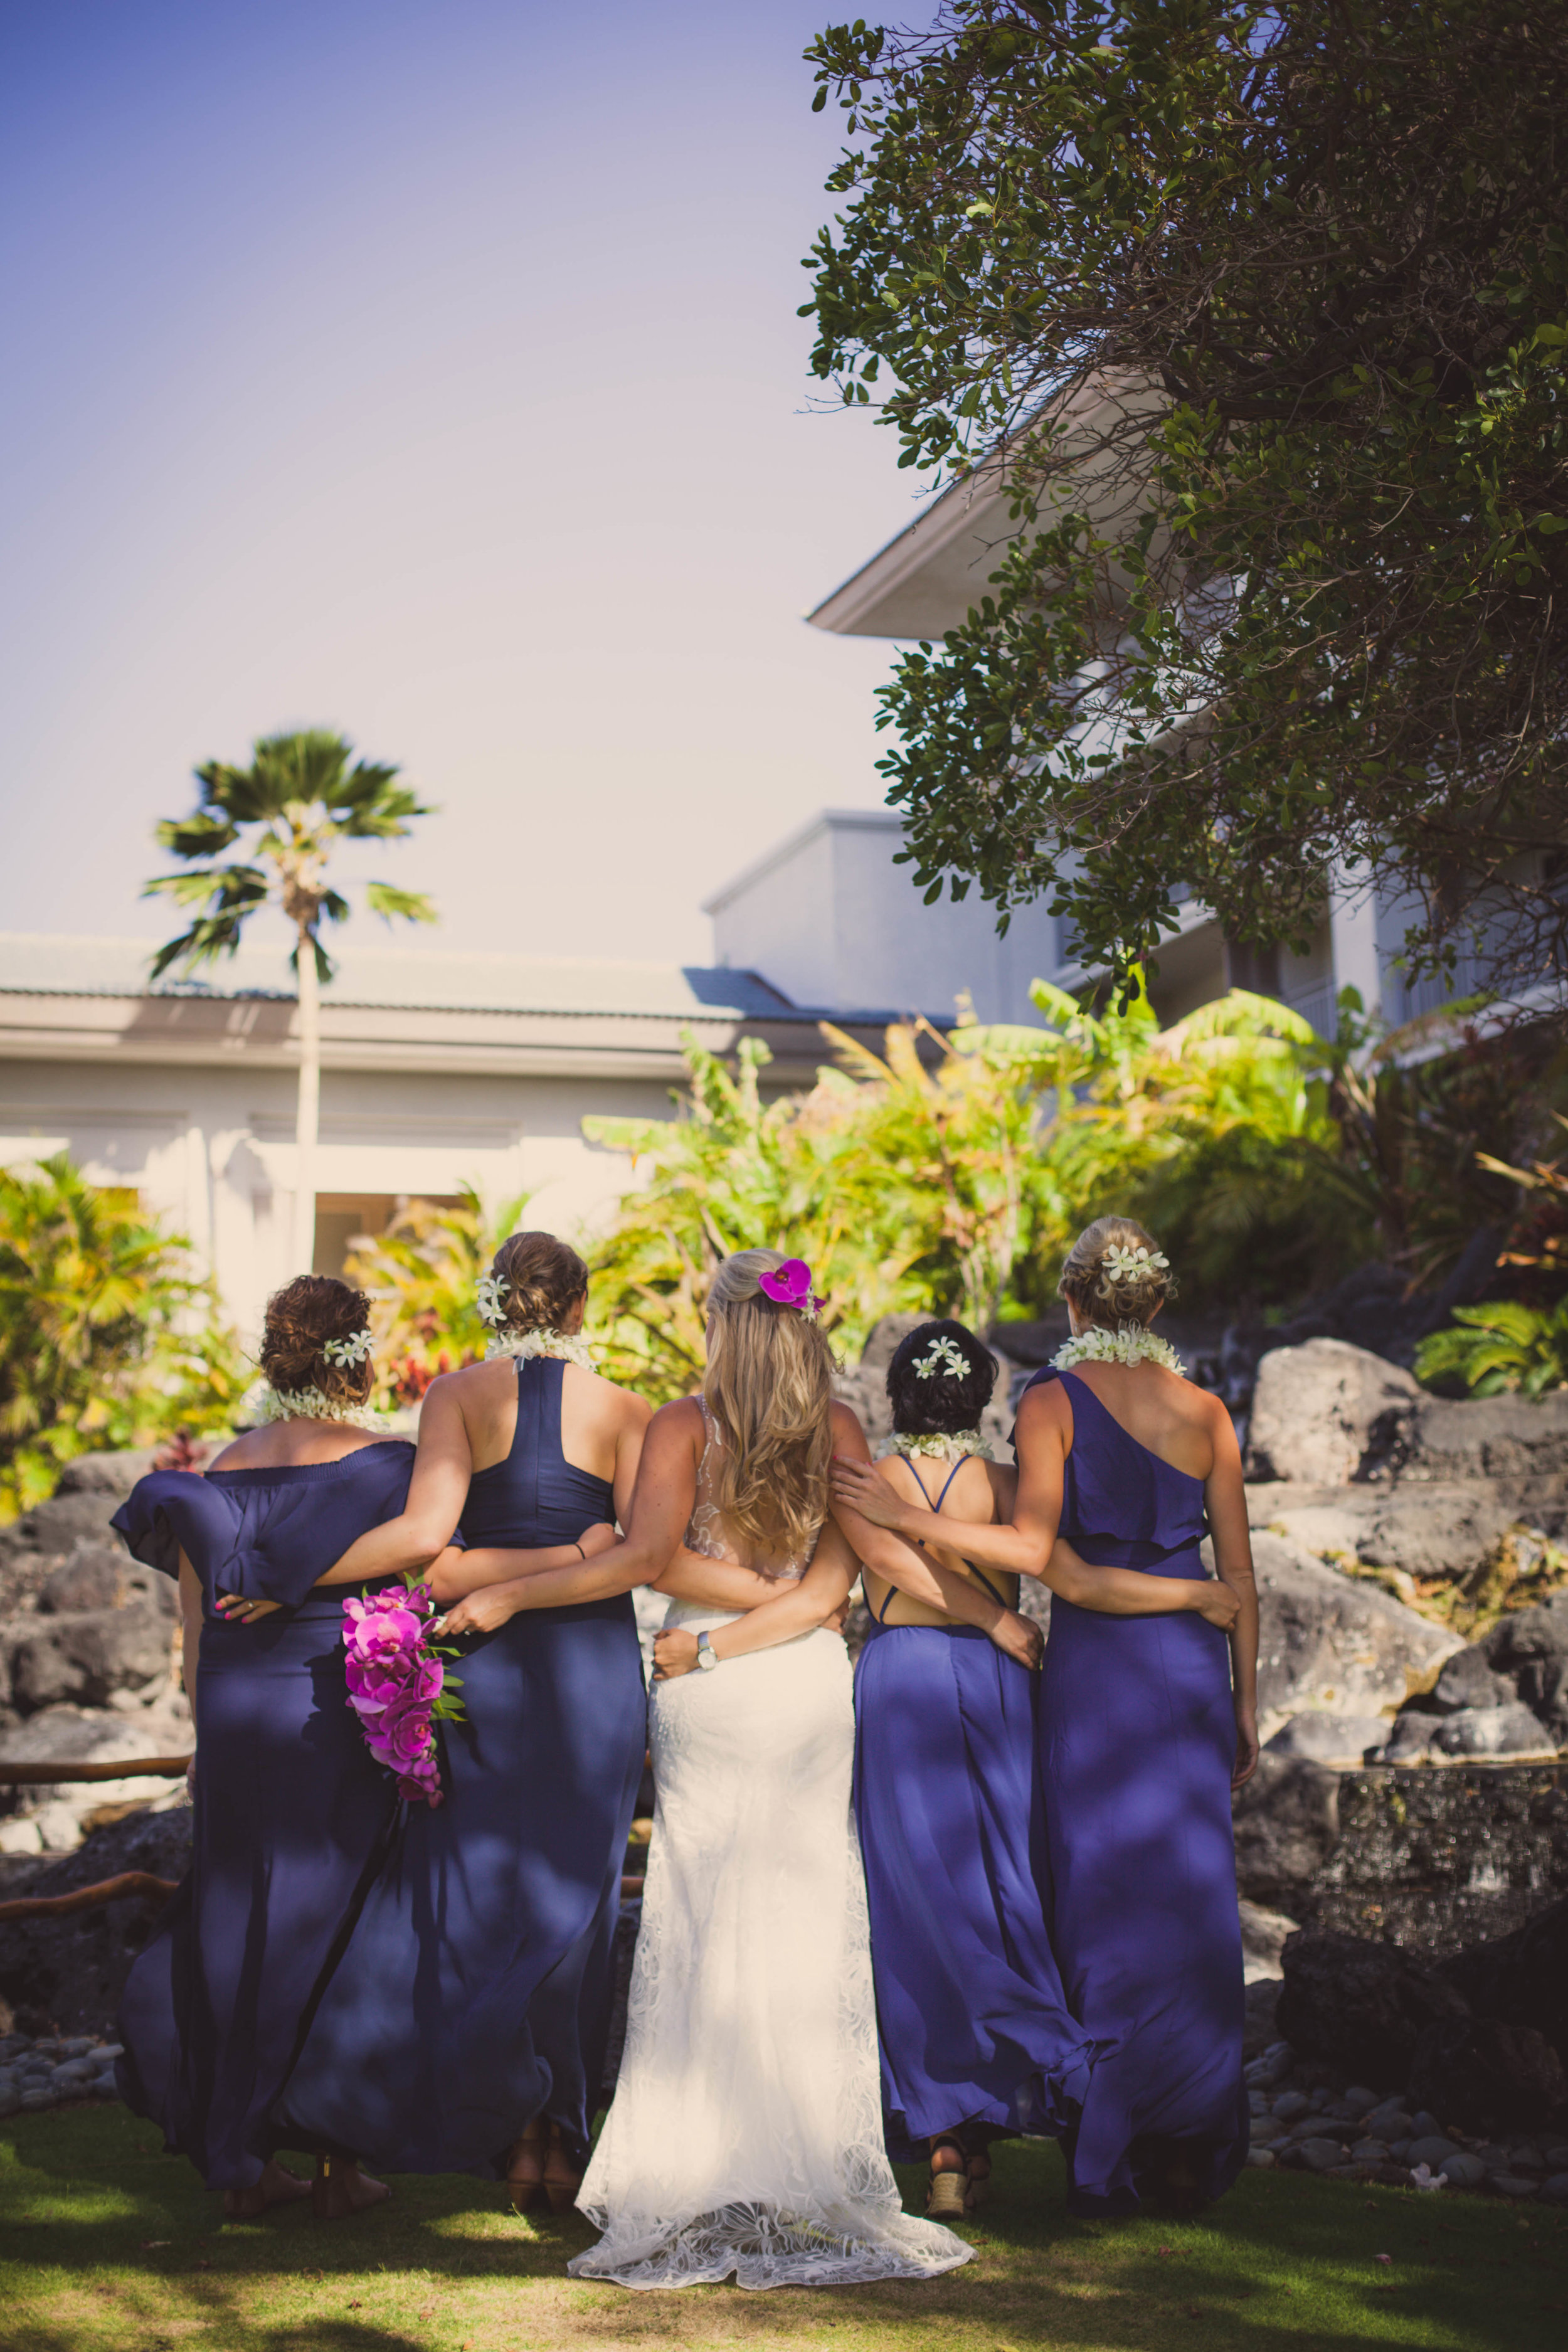 big island hawaii fairmont orchid beach wedding © kelilina photography 20170812163319-1.jpg